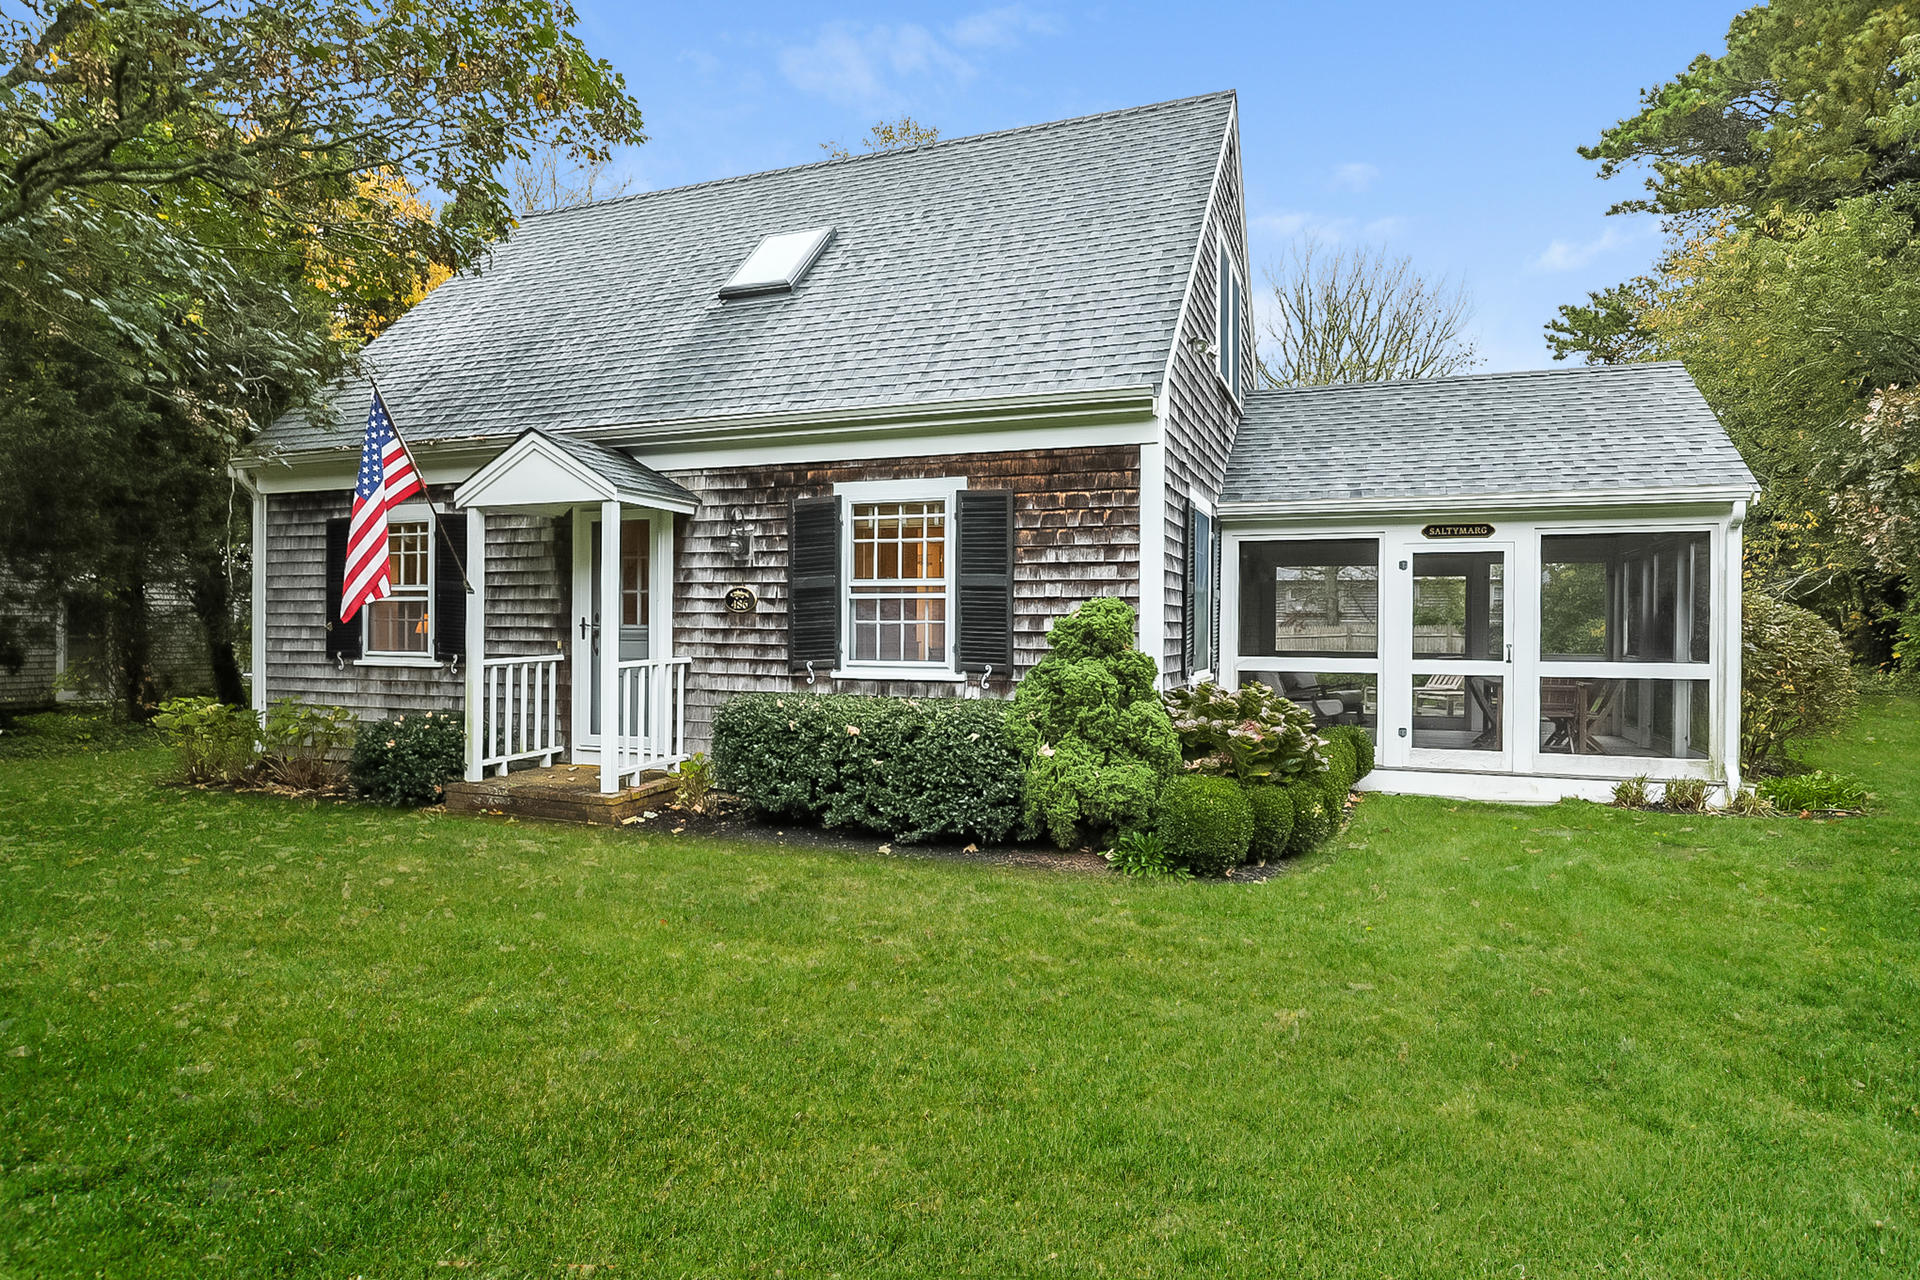 486 Crowell Road, Chatham MA, 02633 details